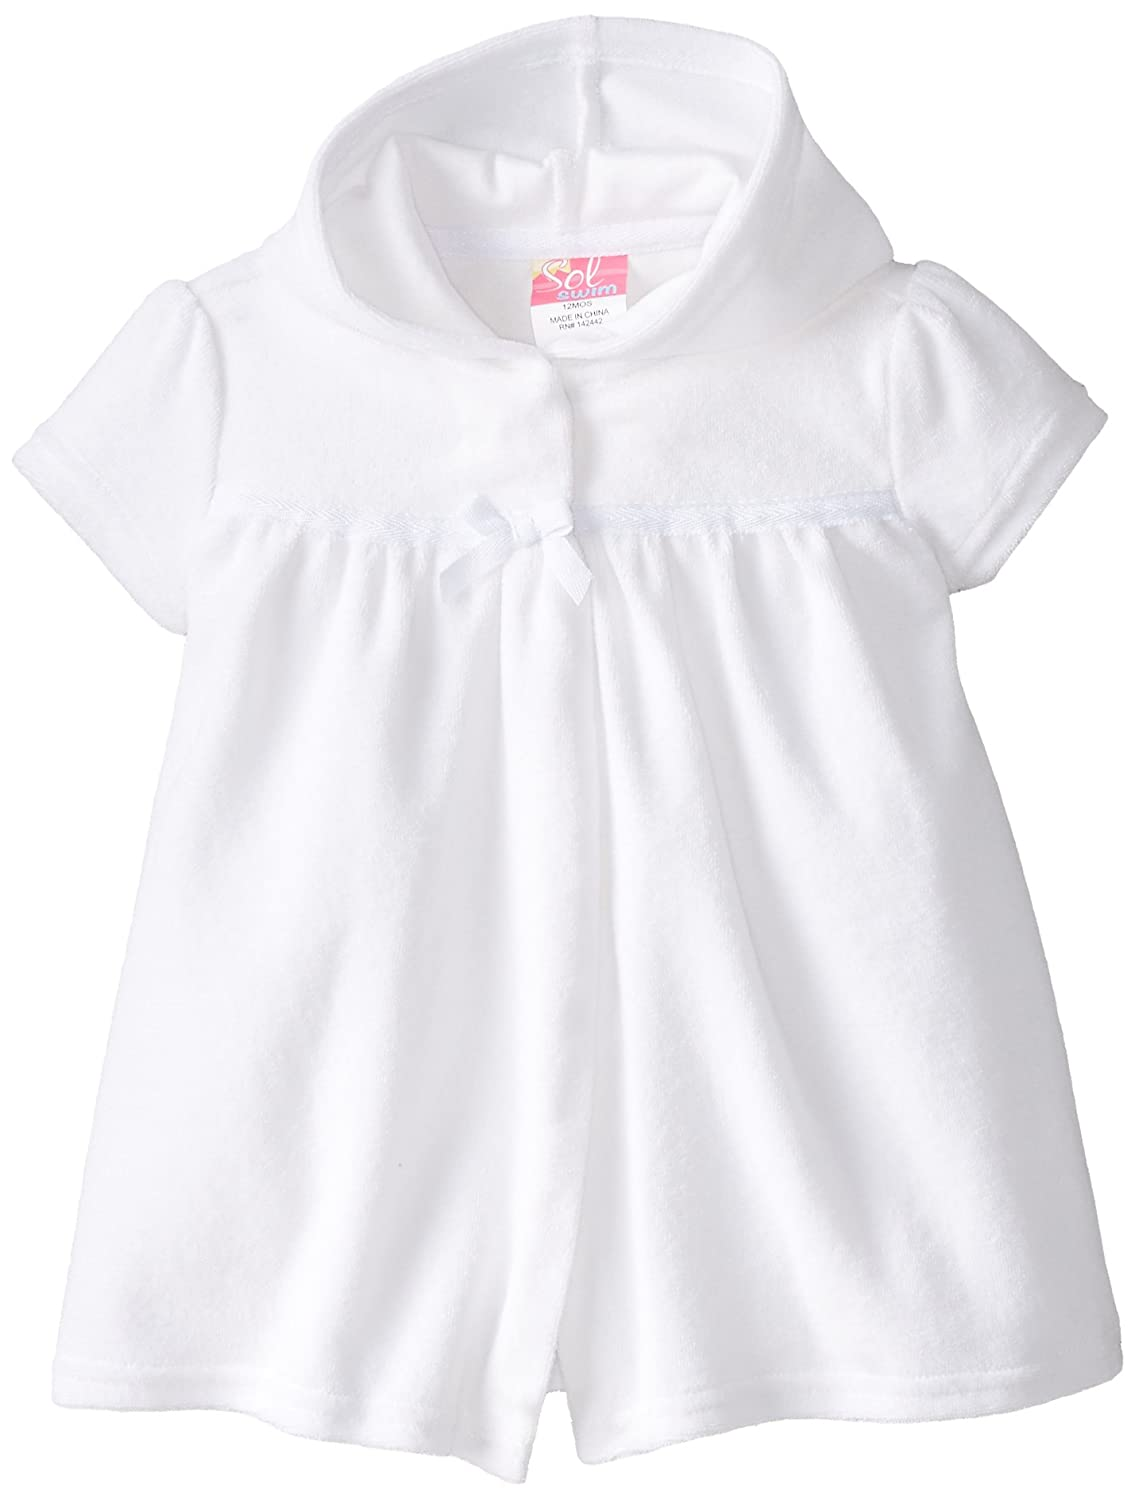 SOL Swim Girls' White Terry Cover-up Solo International Inc Baby GS4-176